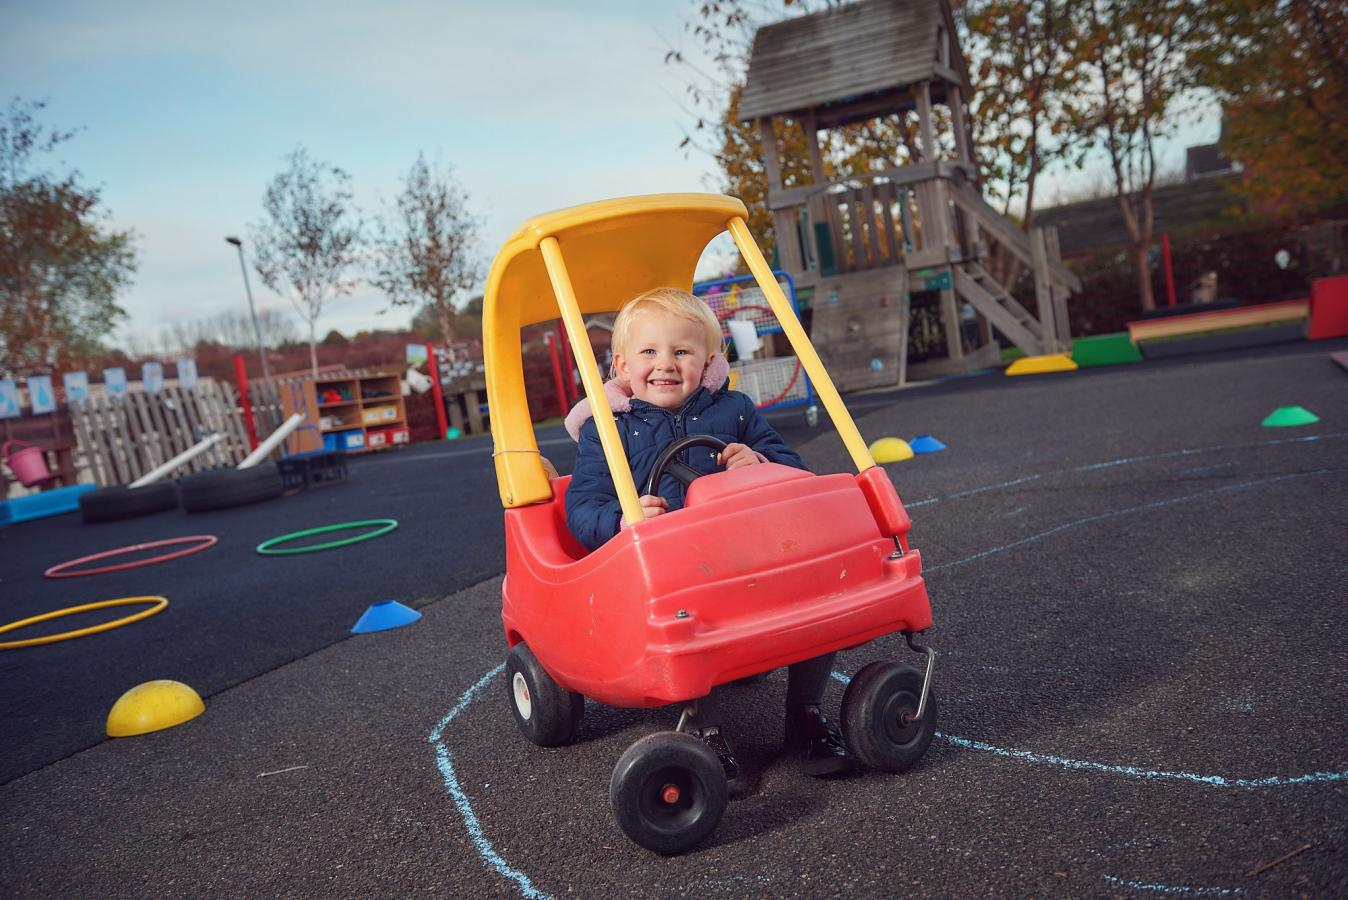 Towngate pupil in a toy car